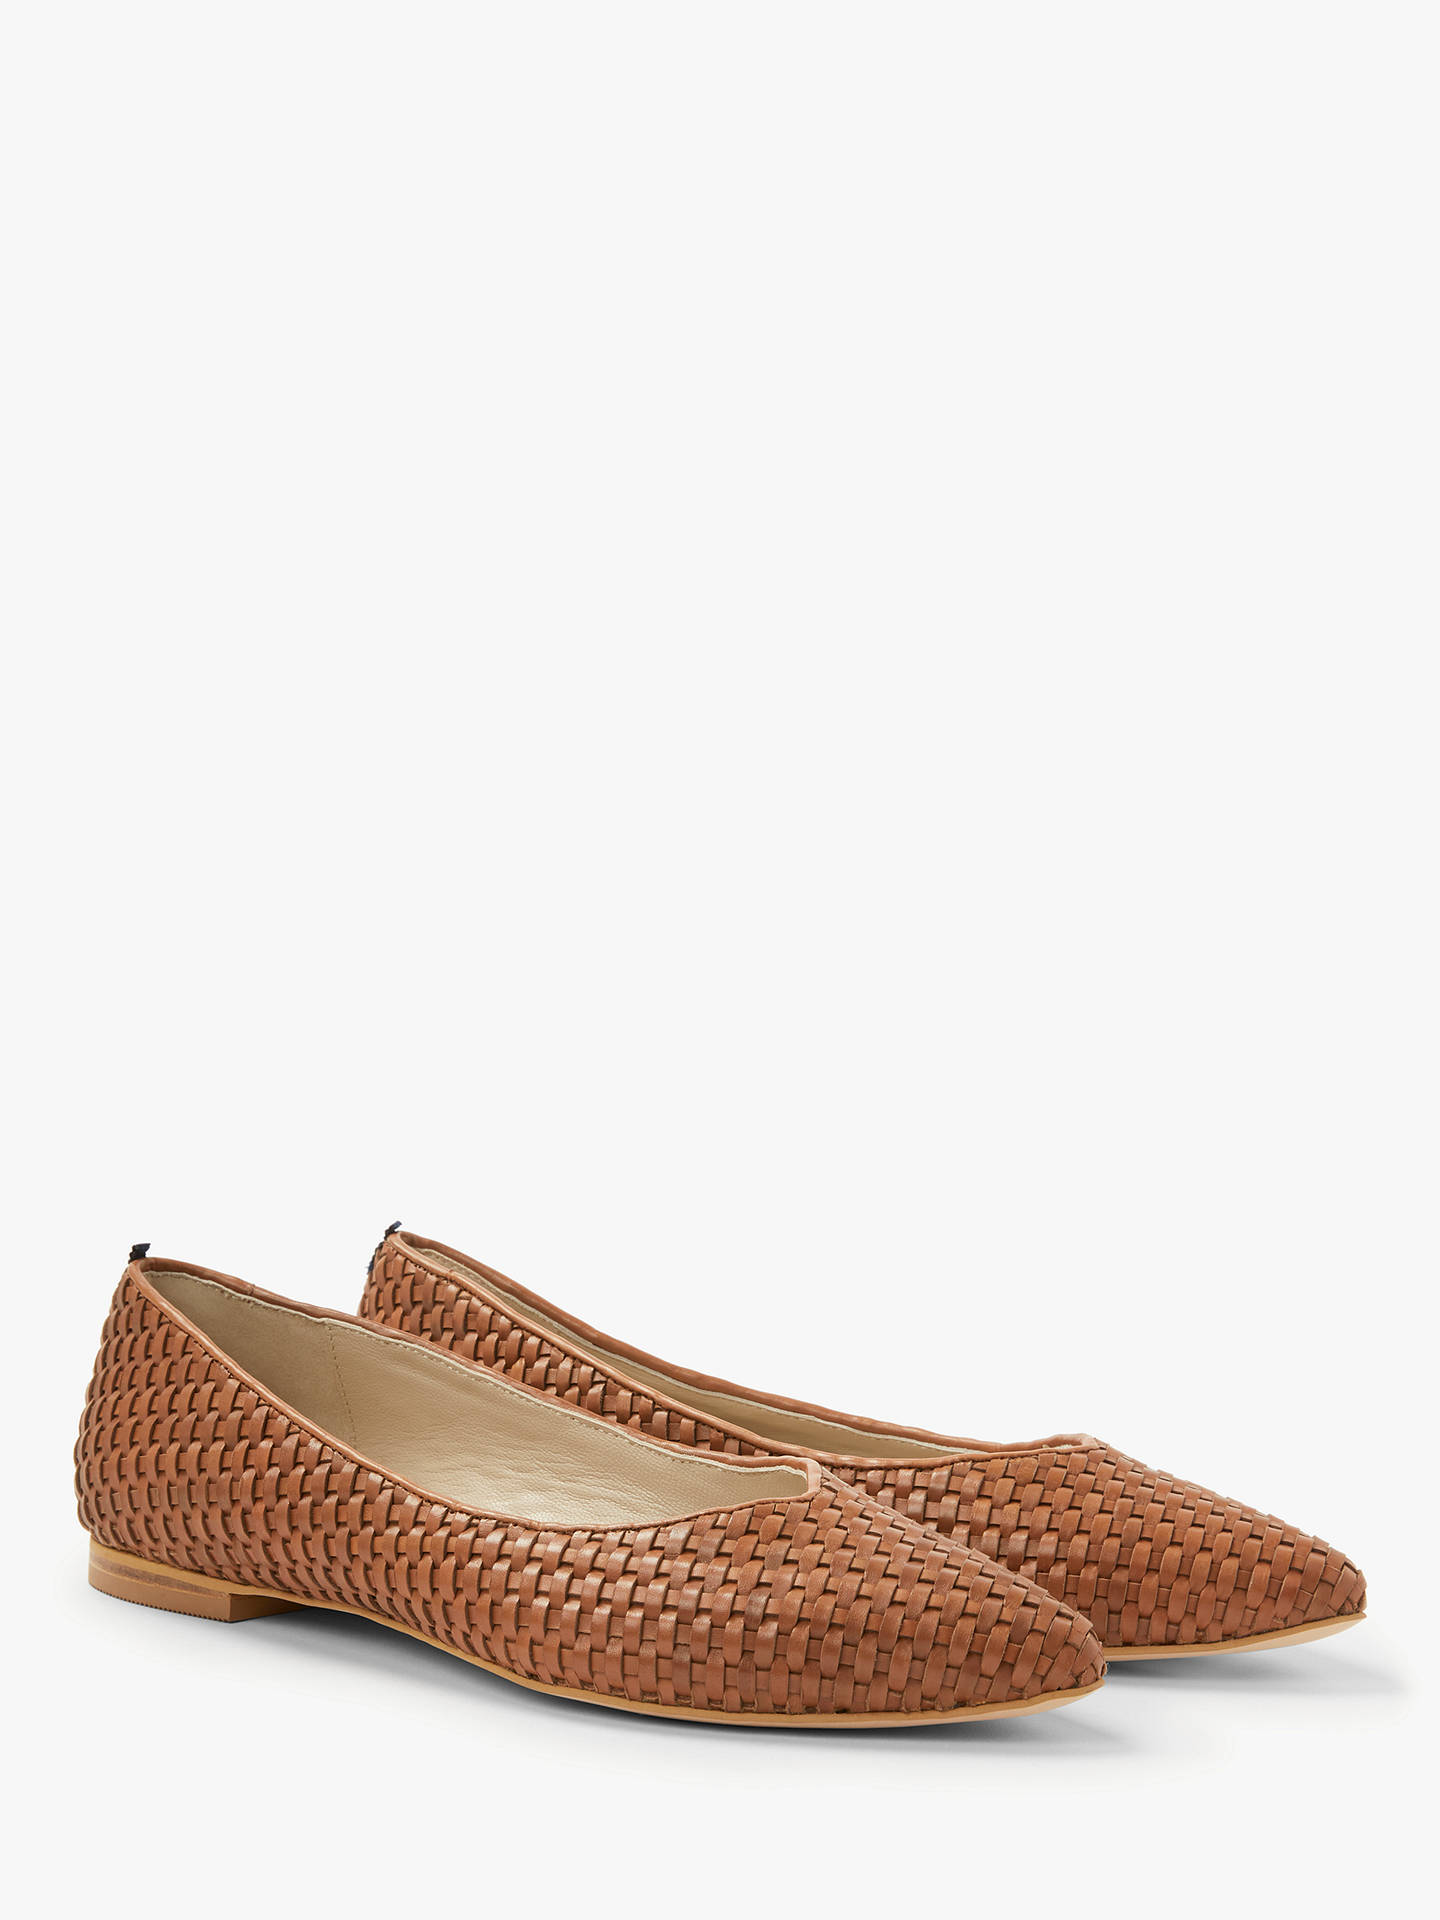 79390c7ff66a4 Boden Hazel Woven Pointed Flat Pumps, Tan Leather